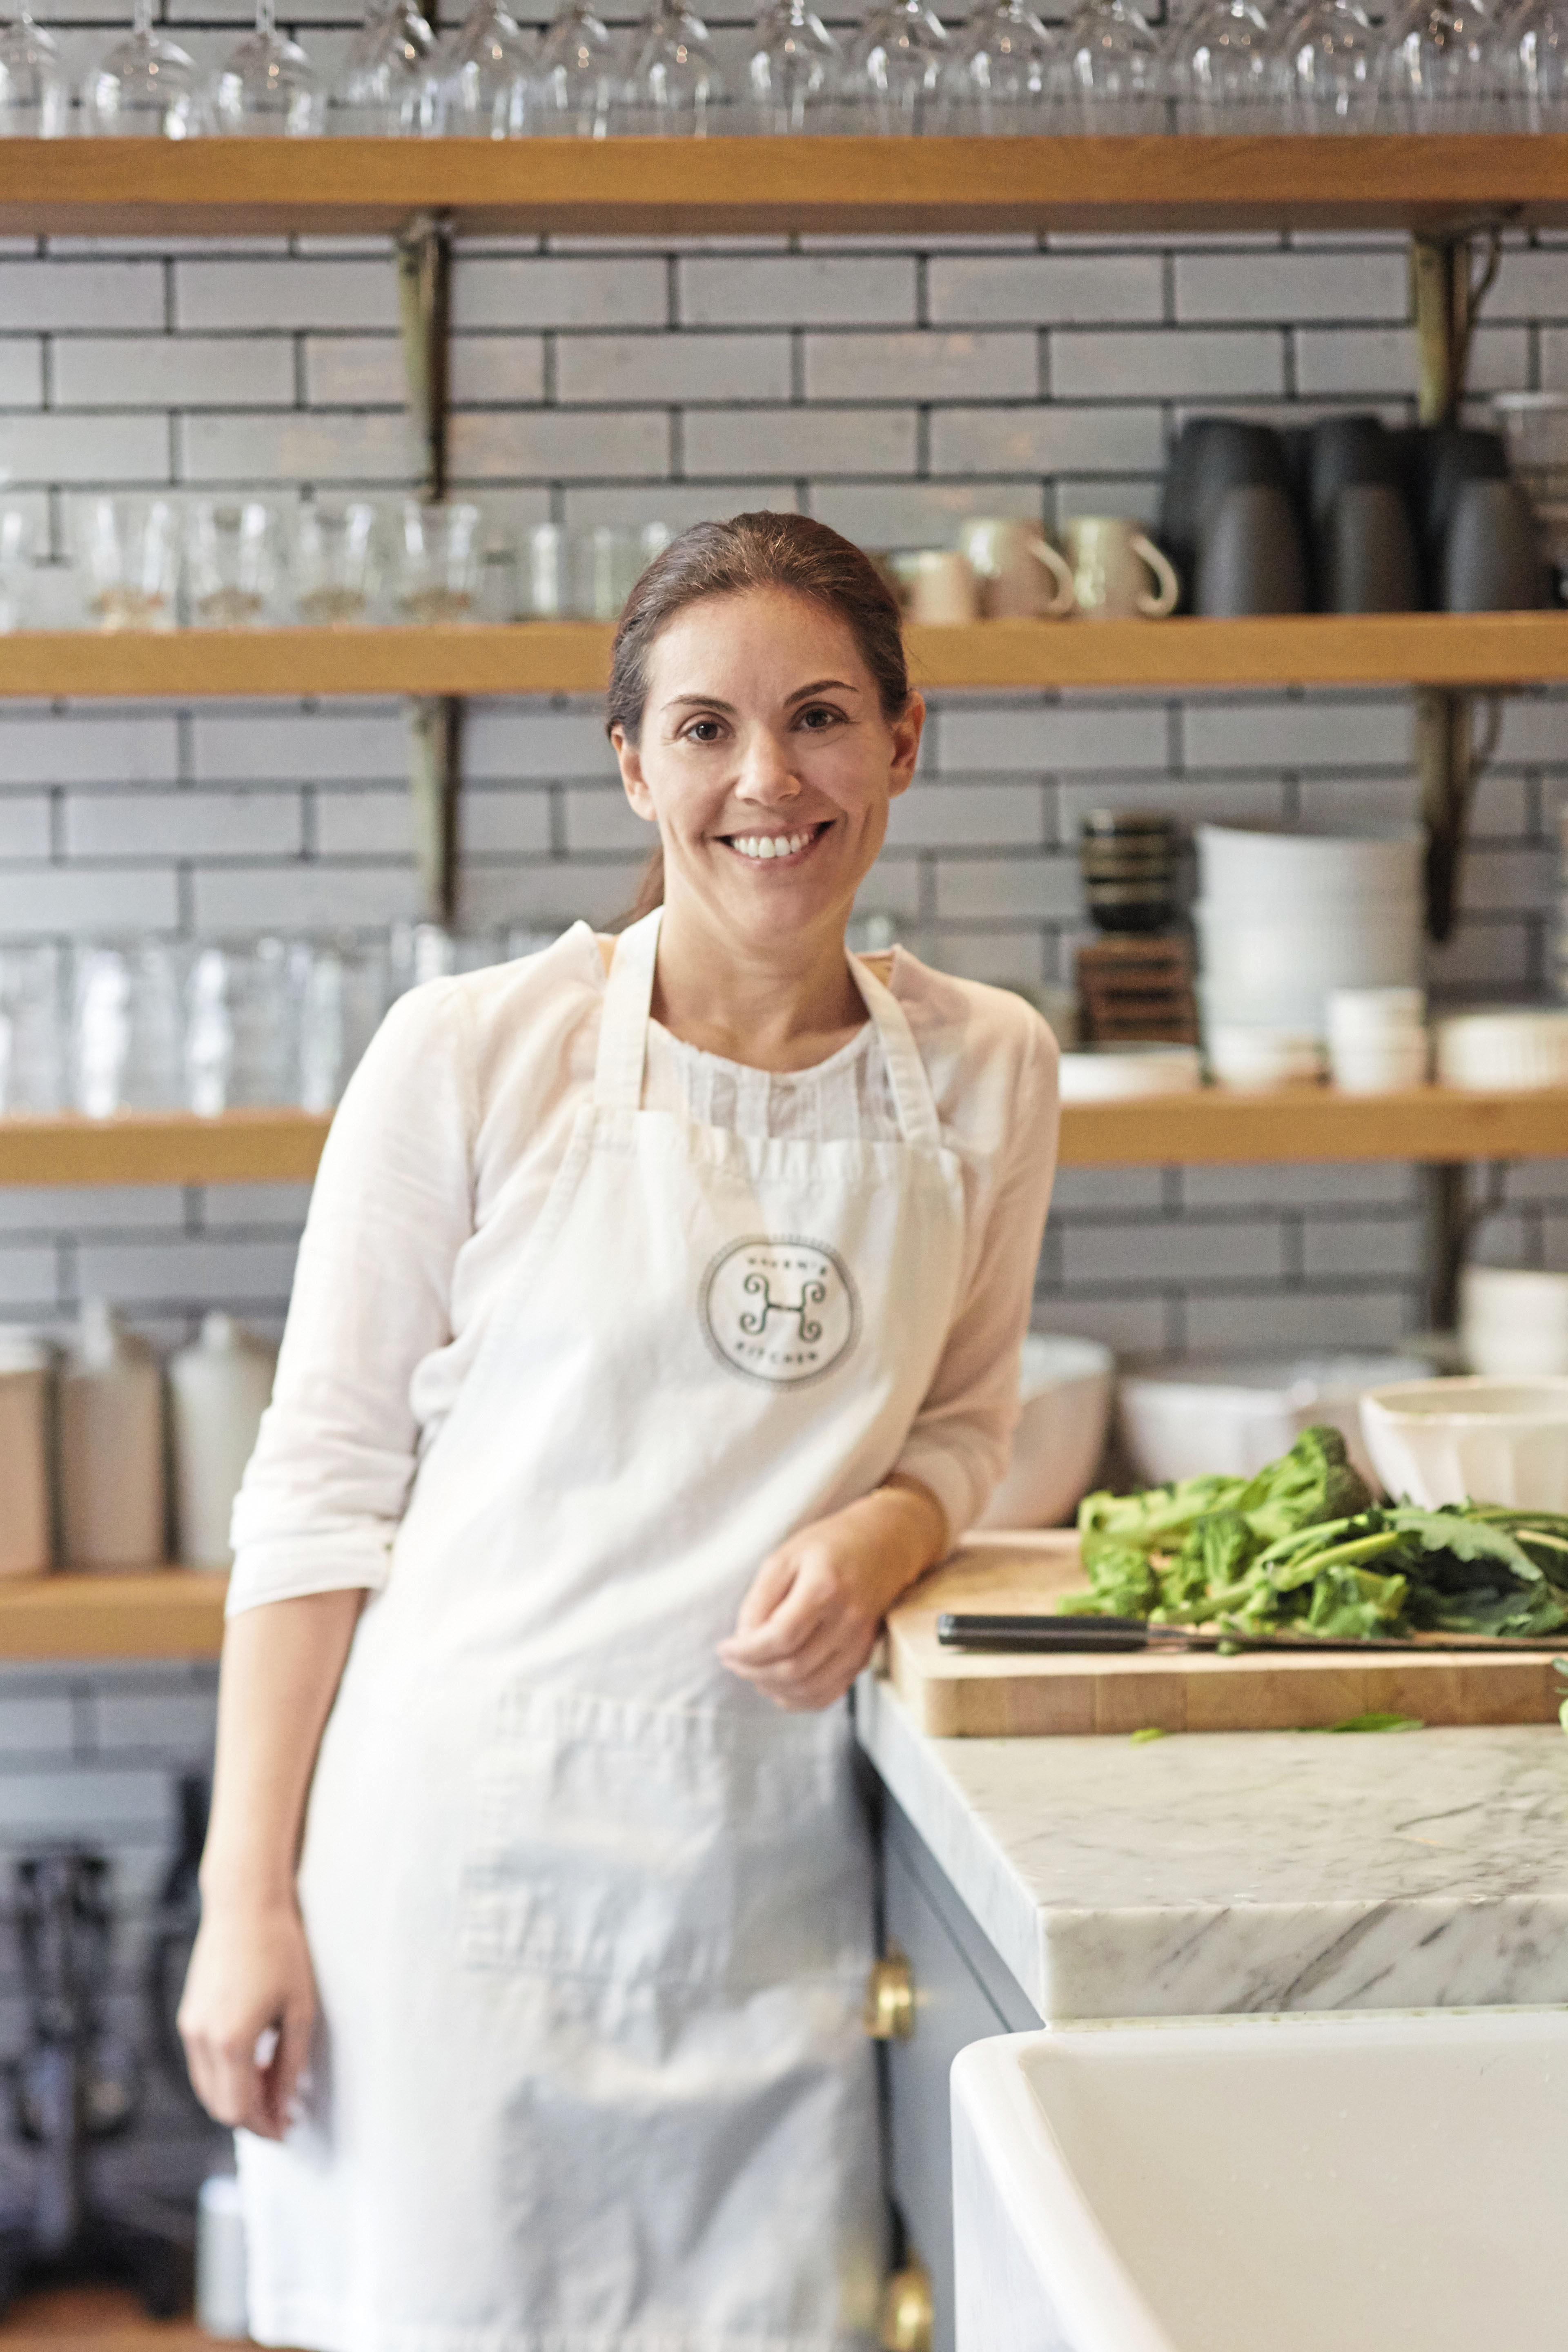 AUTHOR-PHOTO-Alison-Cayne-Credit-Lauren-Volo Alison Cayne is the owner of Haven's Kitchen, which is a cooking school, cafe and event space in New York City.